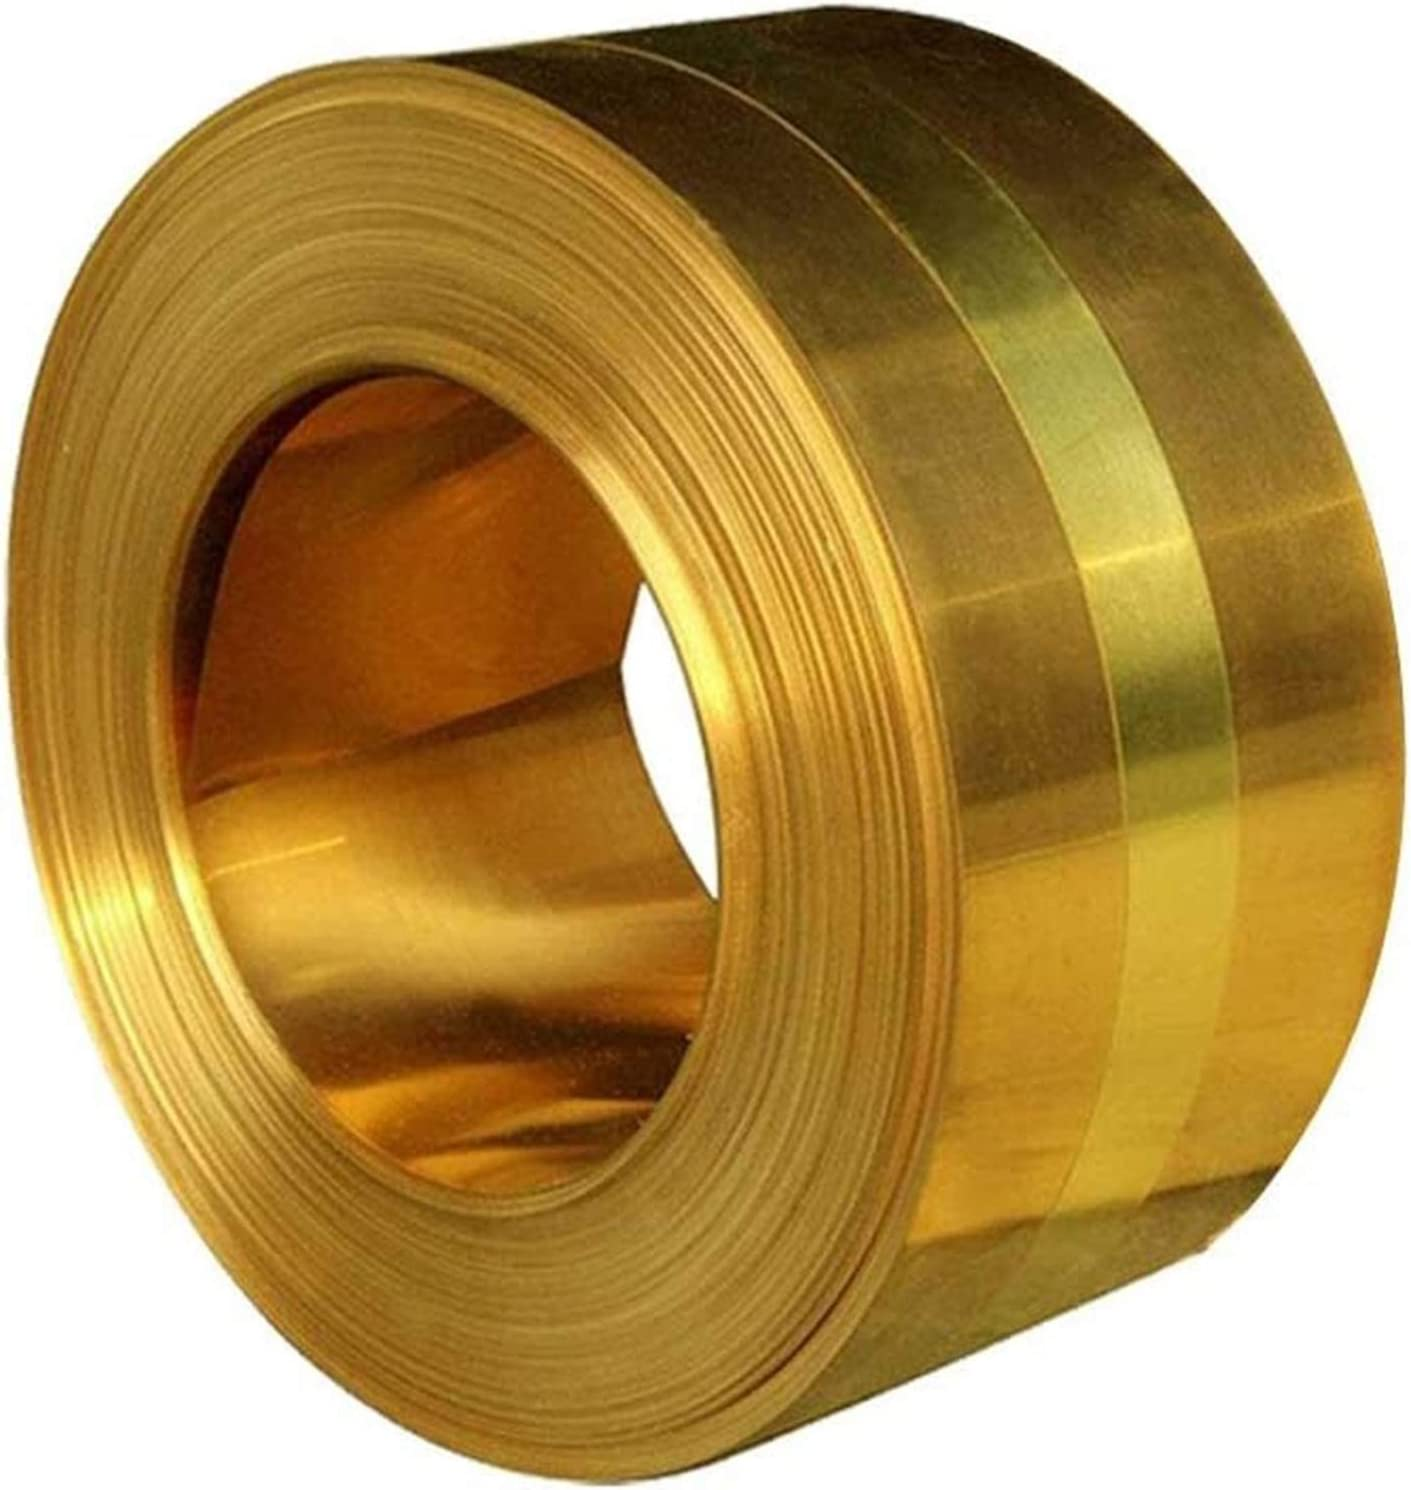 YUESFZ Brass Plate Metal Limited time cheap sale Thin Super popular specialty store Sheet Copper Foil Pure